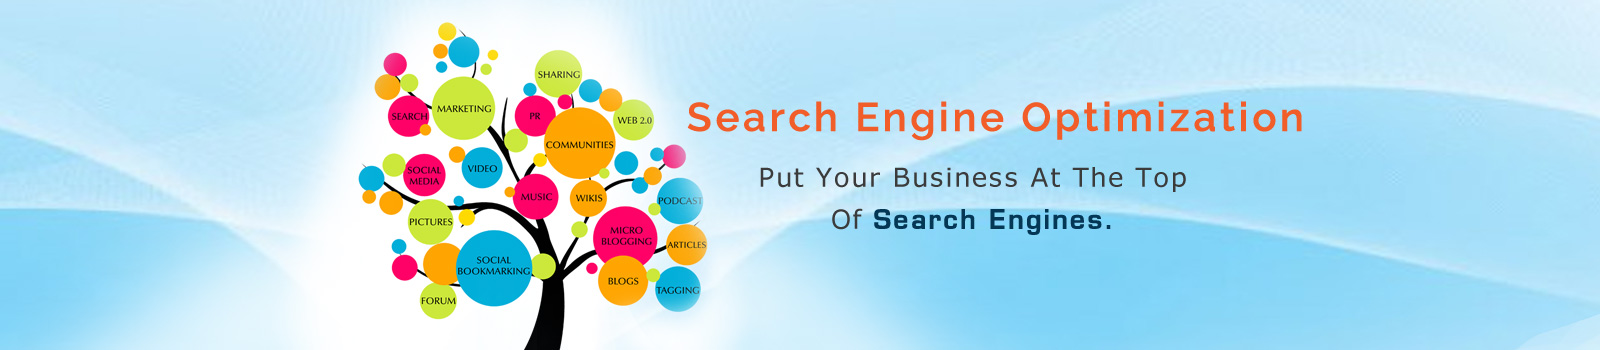 Best Search Engine Optimisation Agency